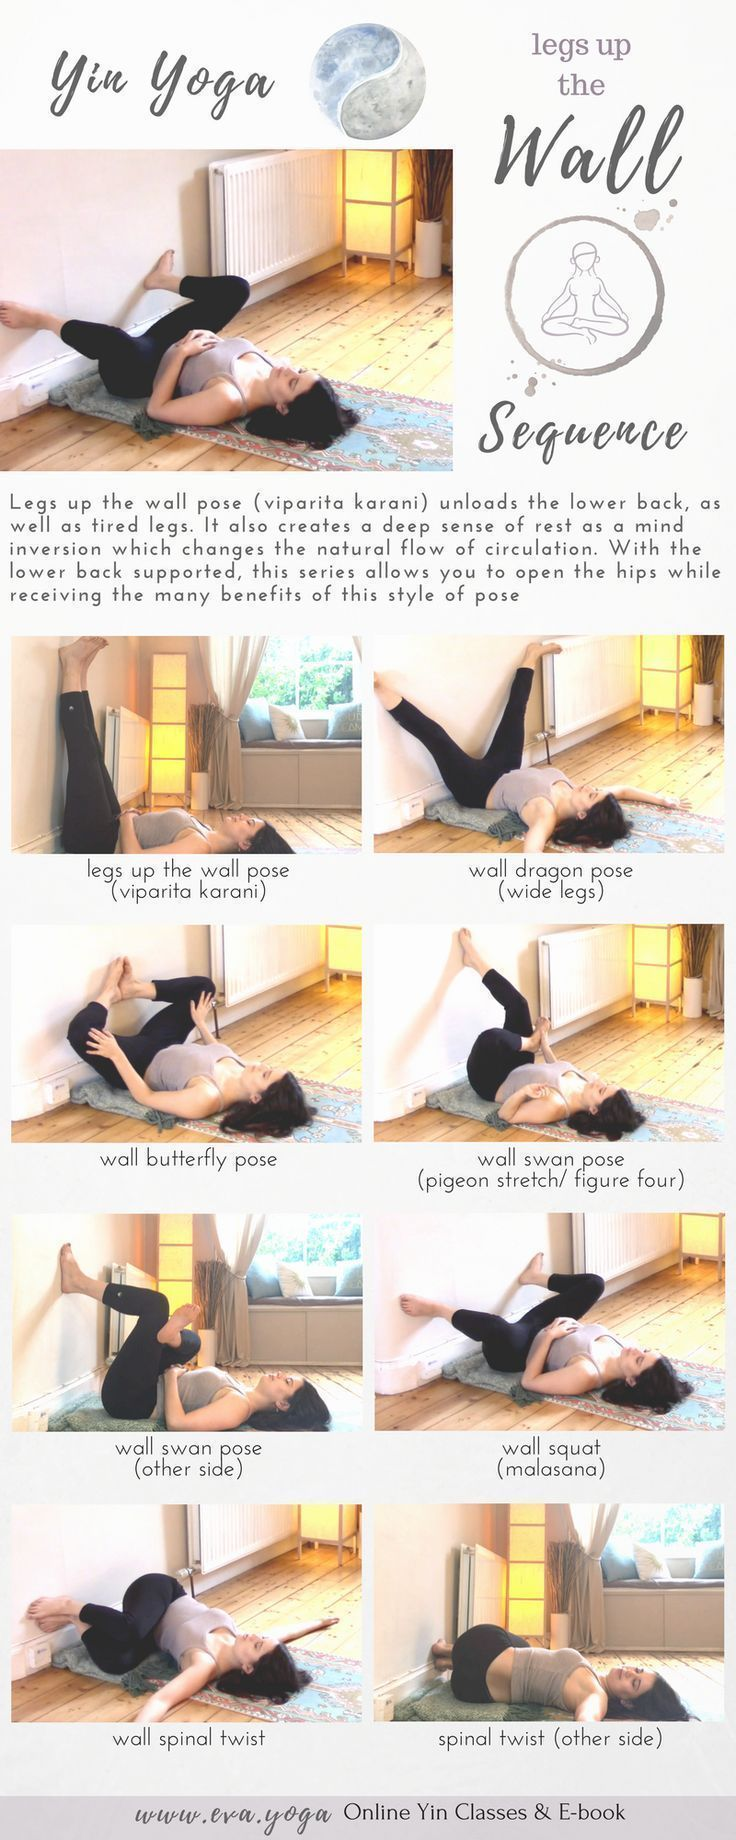 Yin Yoga Practice at the Wall! Grounding & restoring practice to stretch connective tissue & release stress. Class Theme & Sequence Yin Yoga sequences & inspiration for teachers & students! Online classes & ebook available now: https://www.eva.yoga/writing-resources https://app.namastream.com/#/evayoga/product/1983/recordings www.eva.yoga #yogasequences